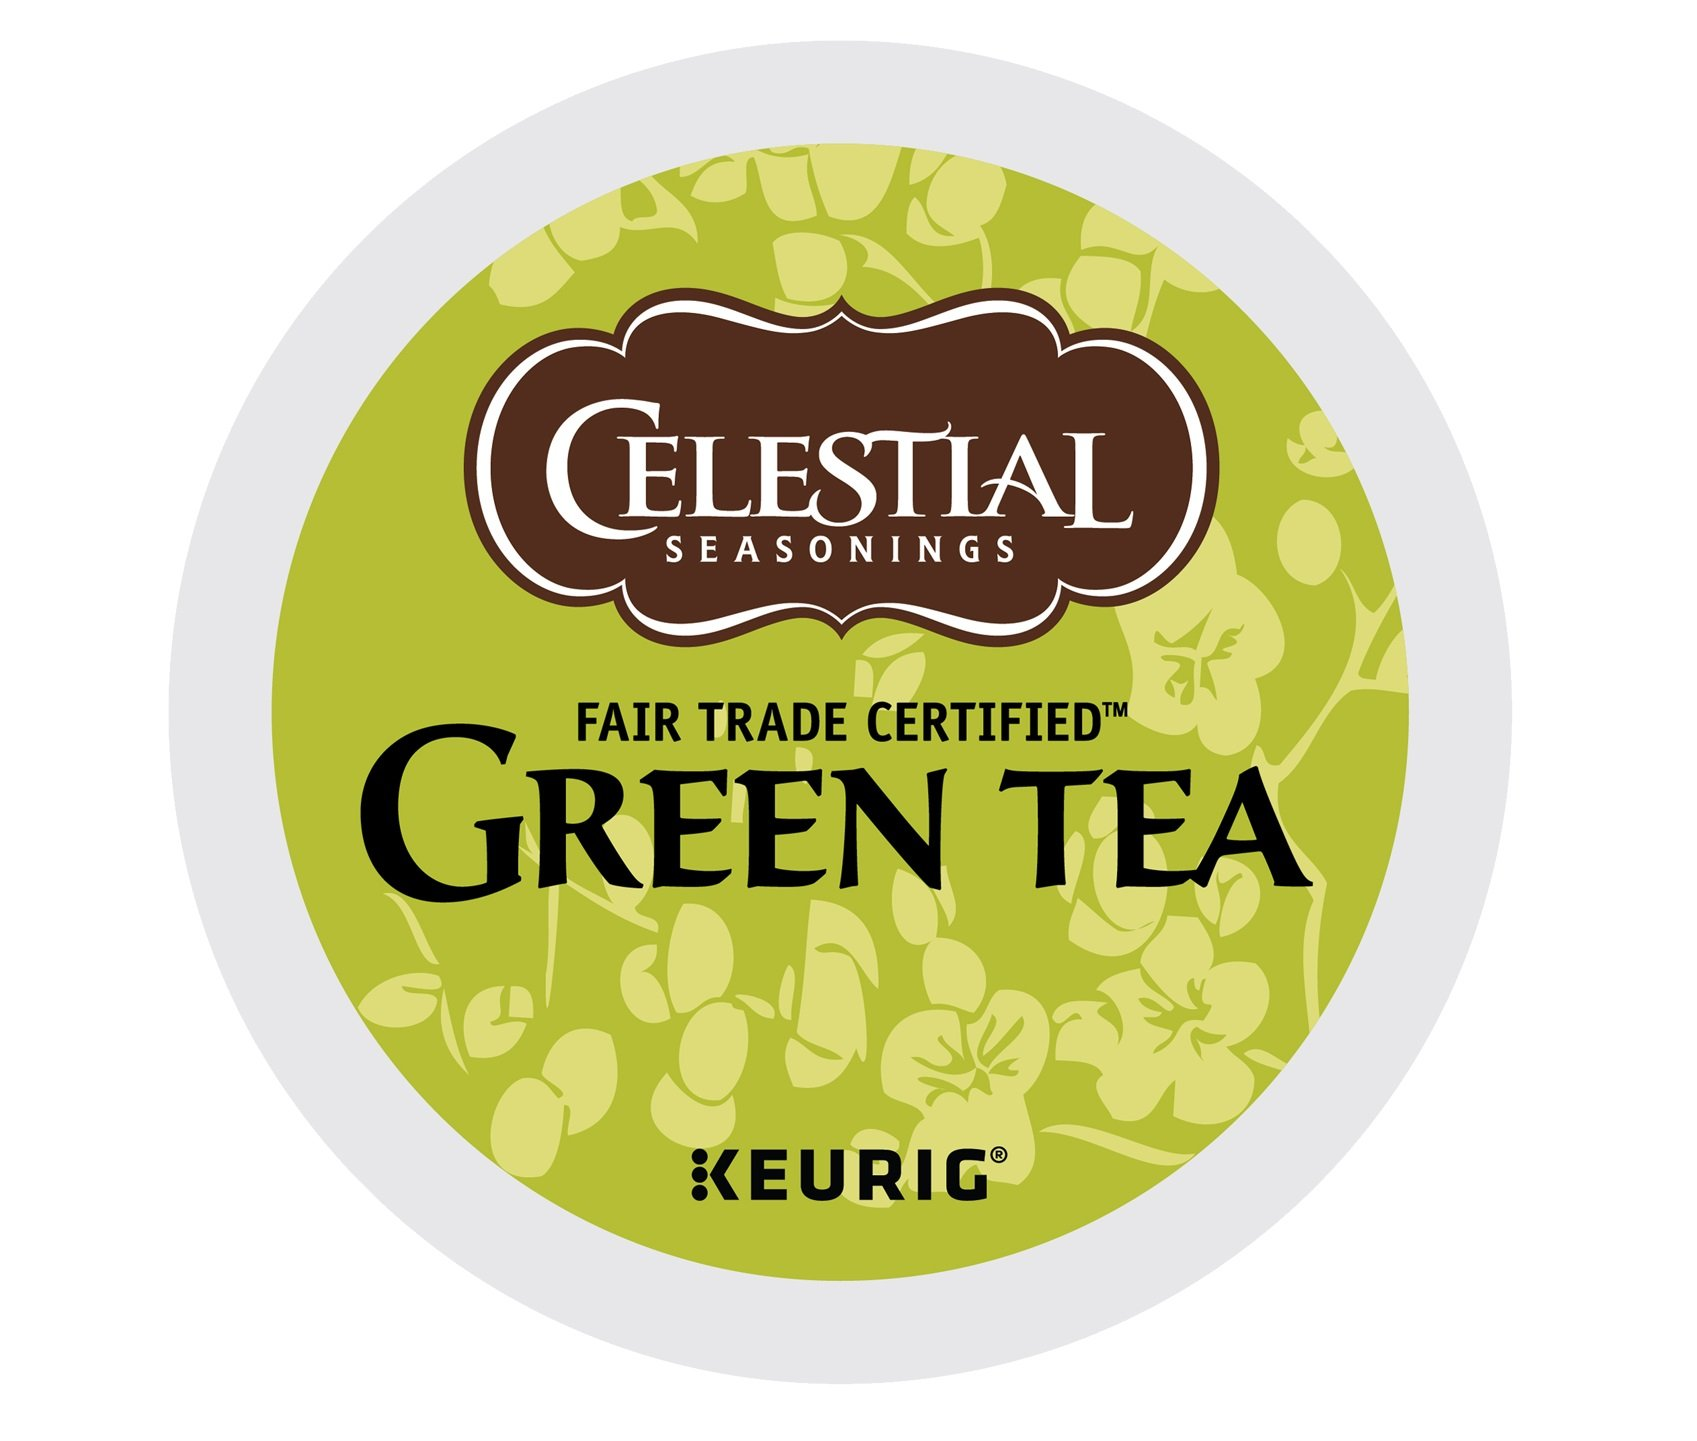 Celestial Seasonings Green Tea, Single Serve Coffee K-Cup Pod, Tea, 72 by Celestial Seasonings